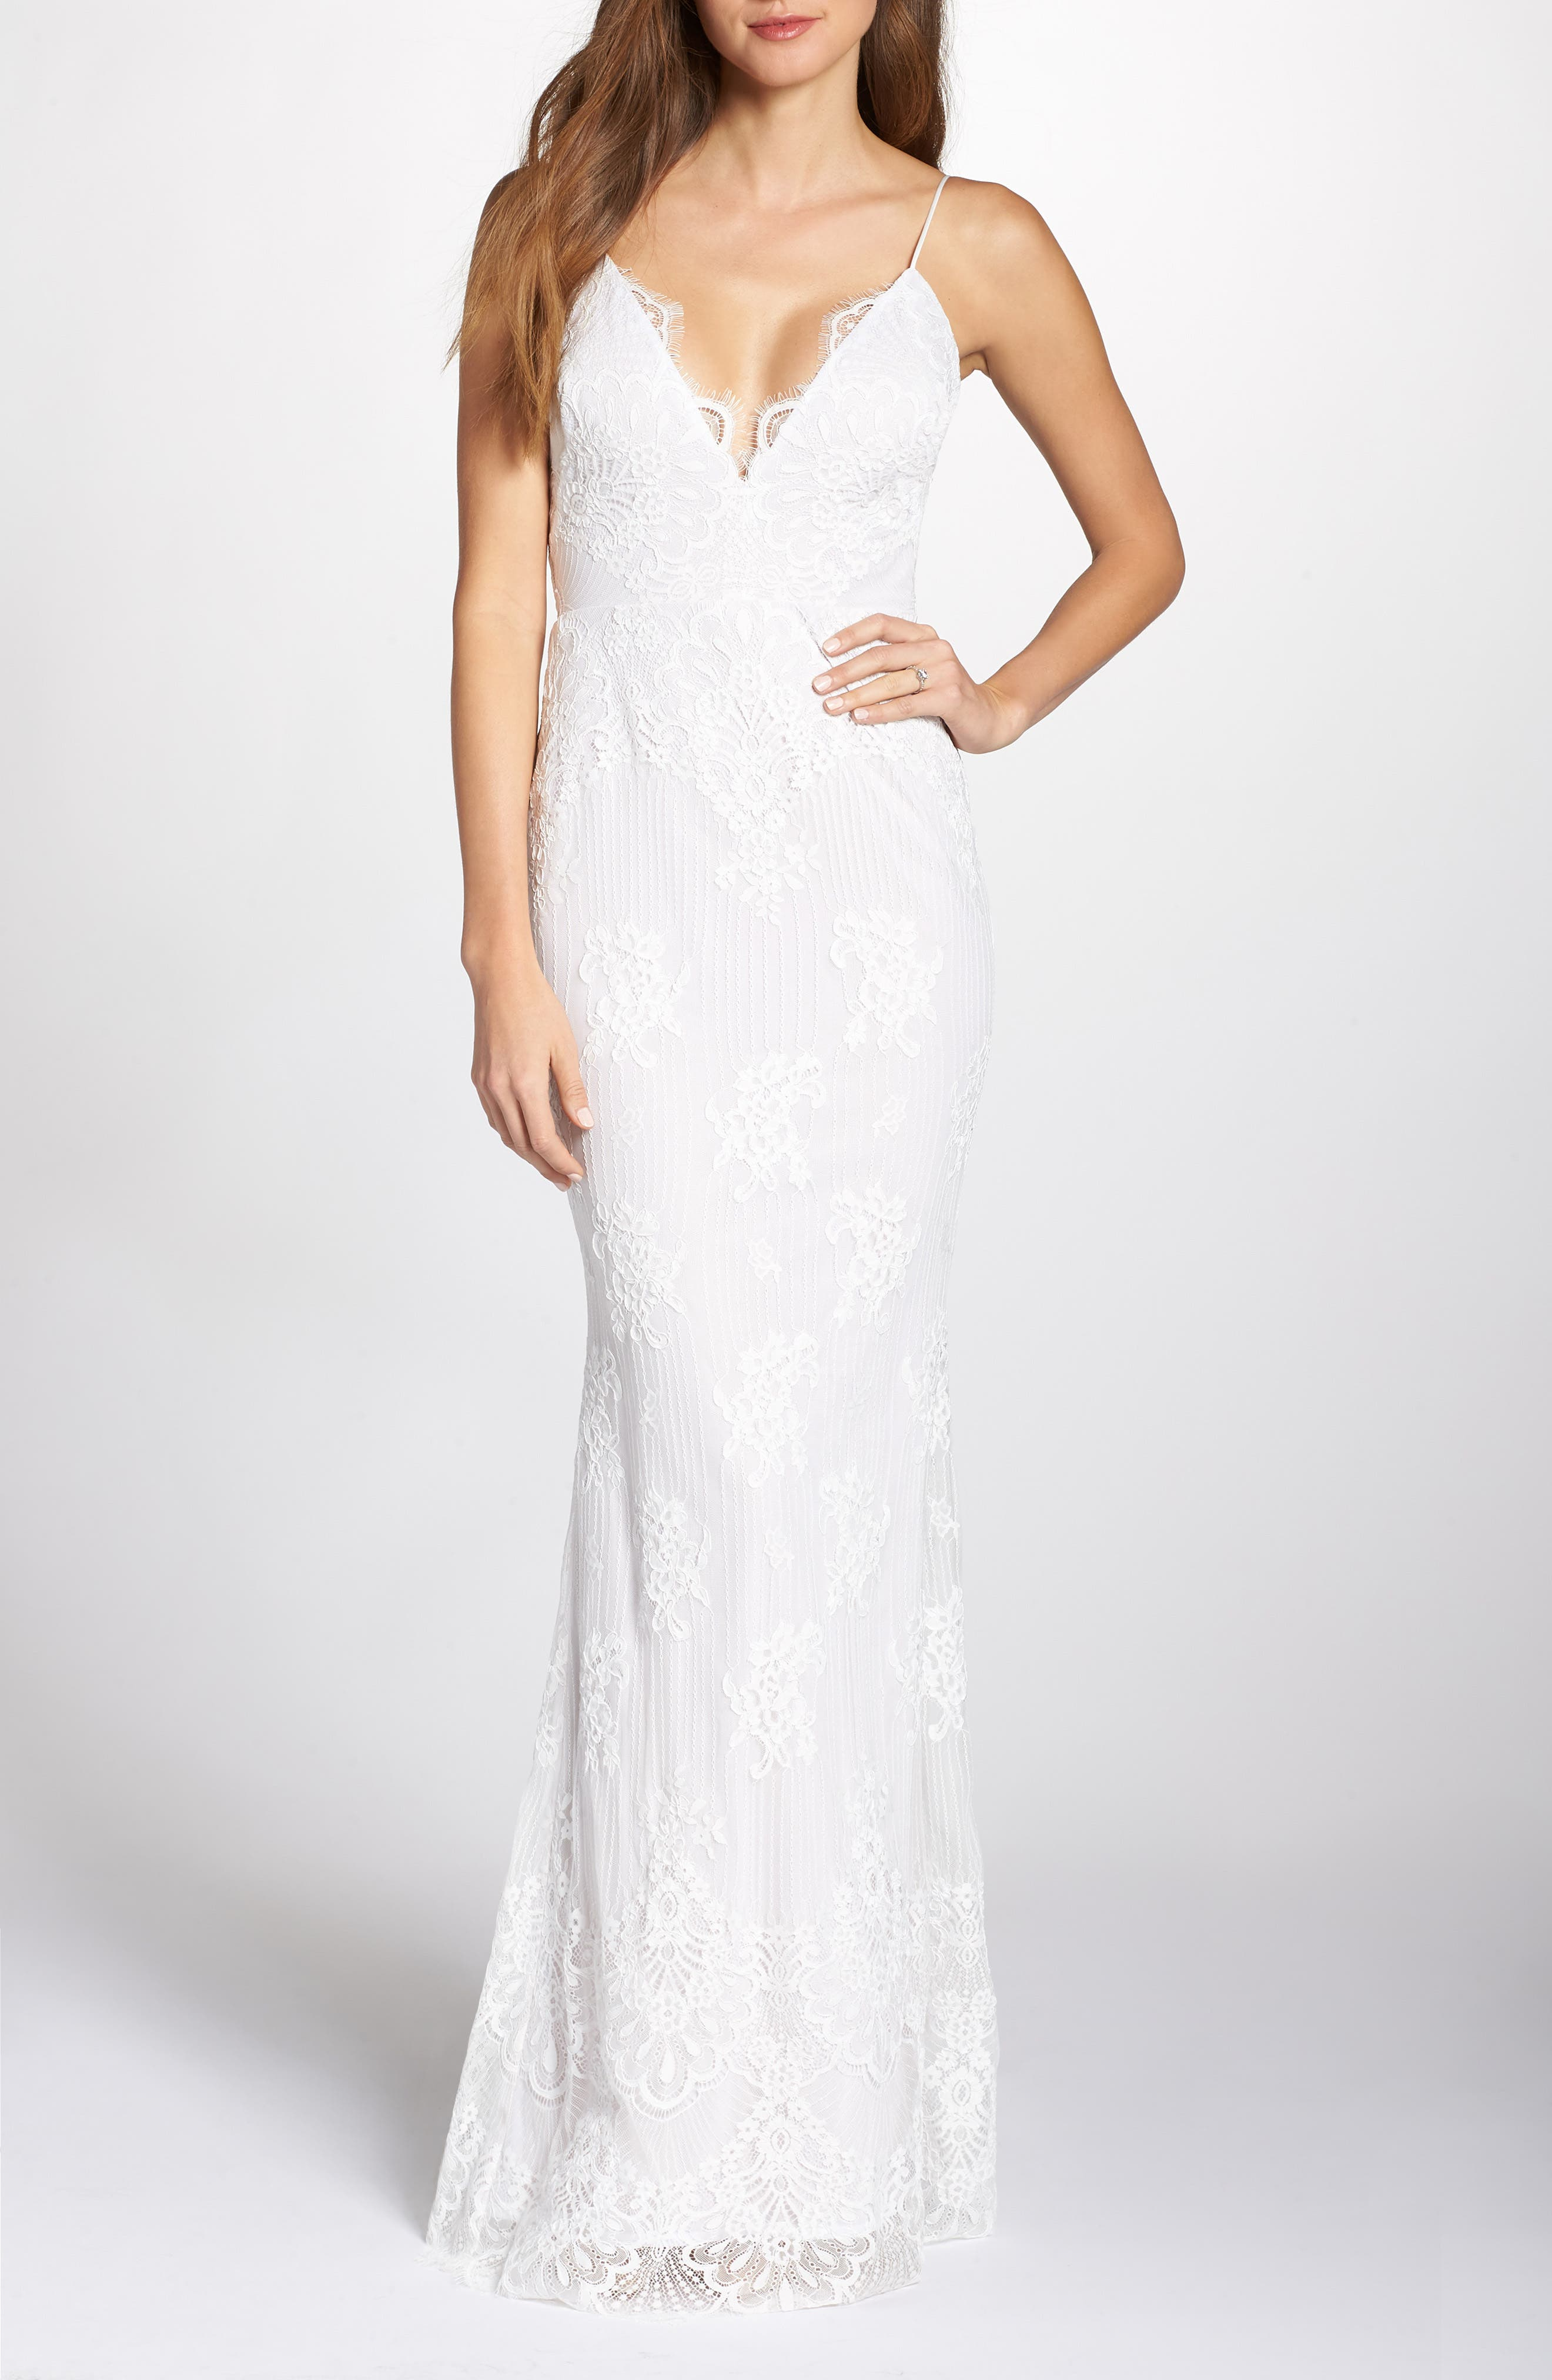 Noel And Jean By Katie May Rose Lace Wedding Dress, Ivory